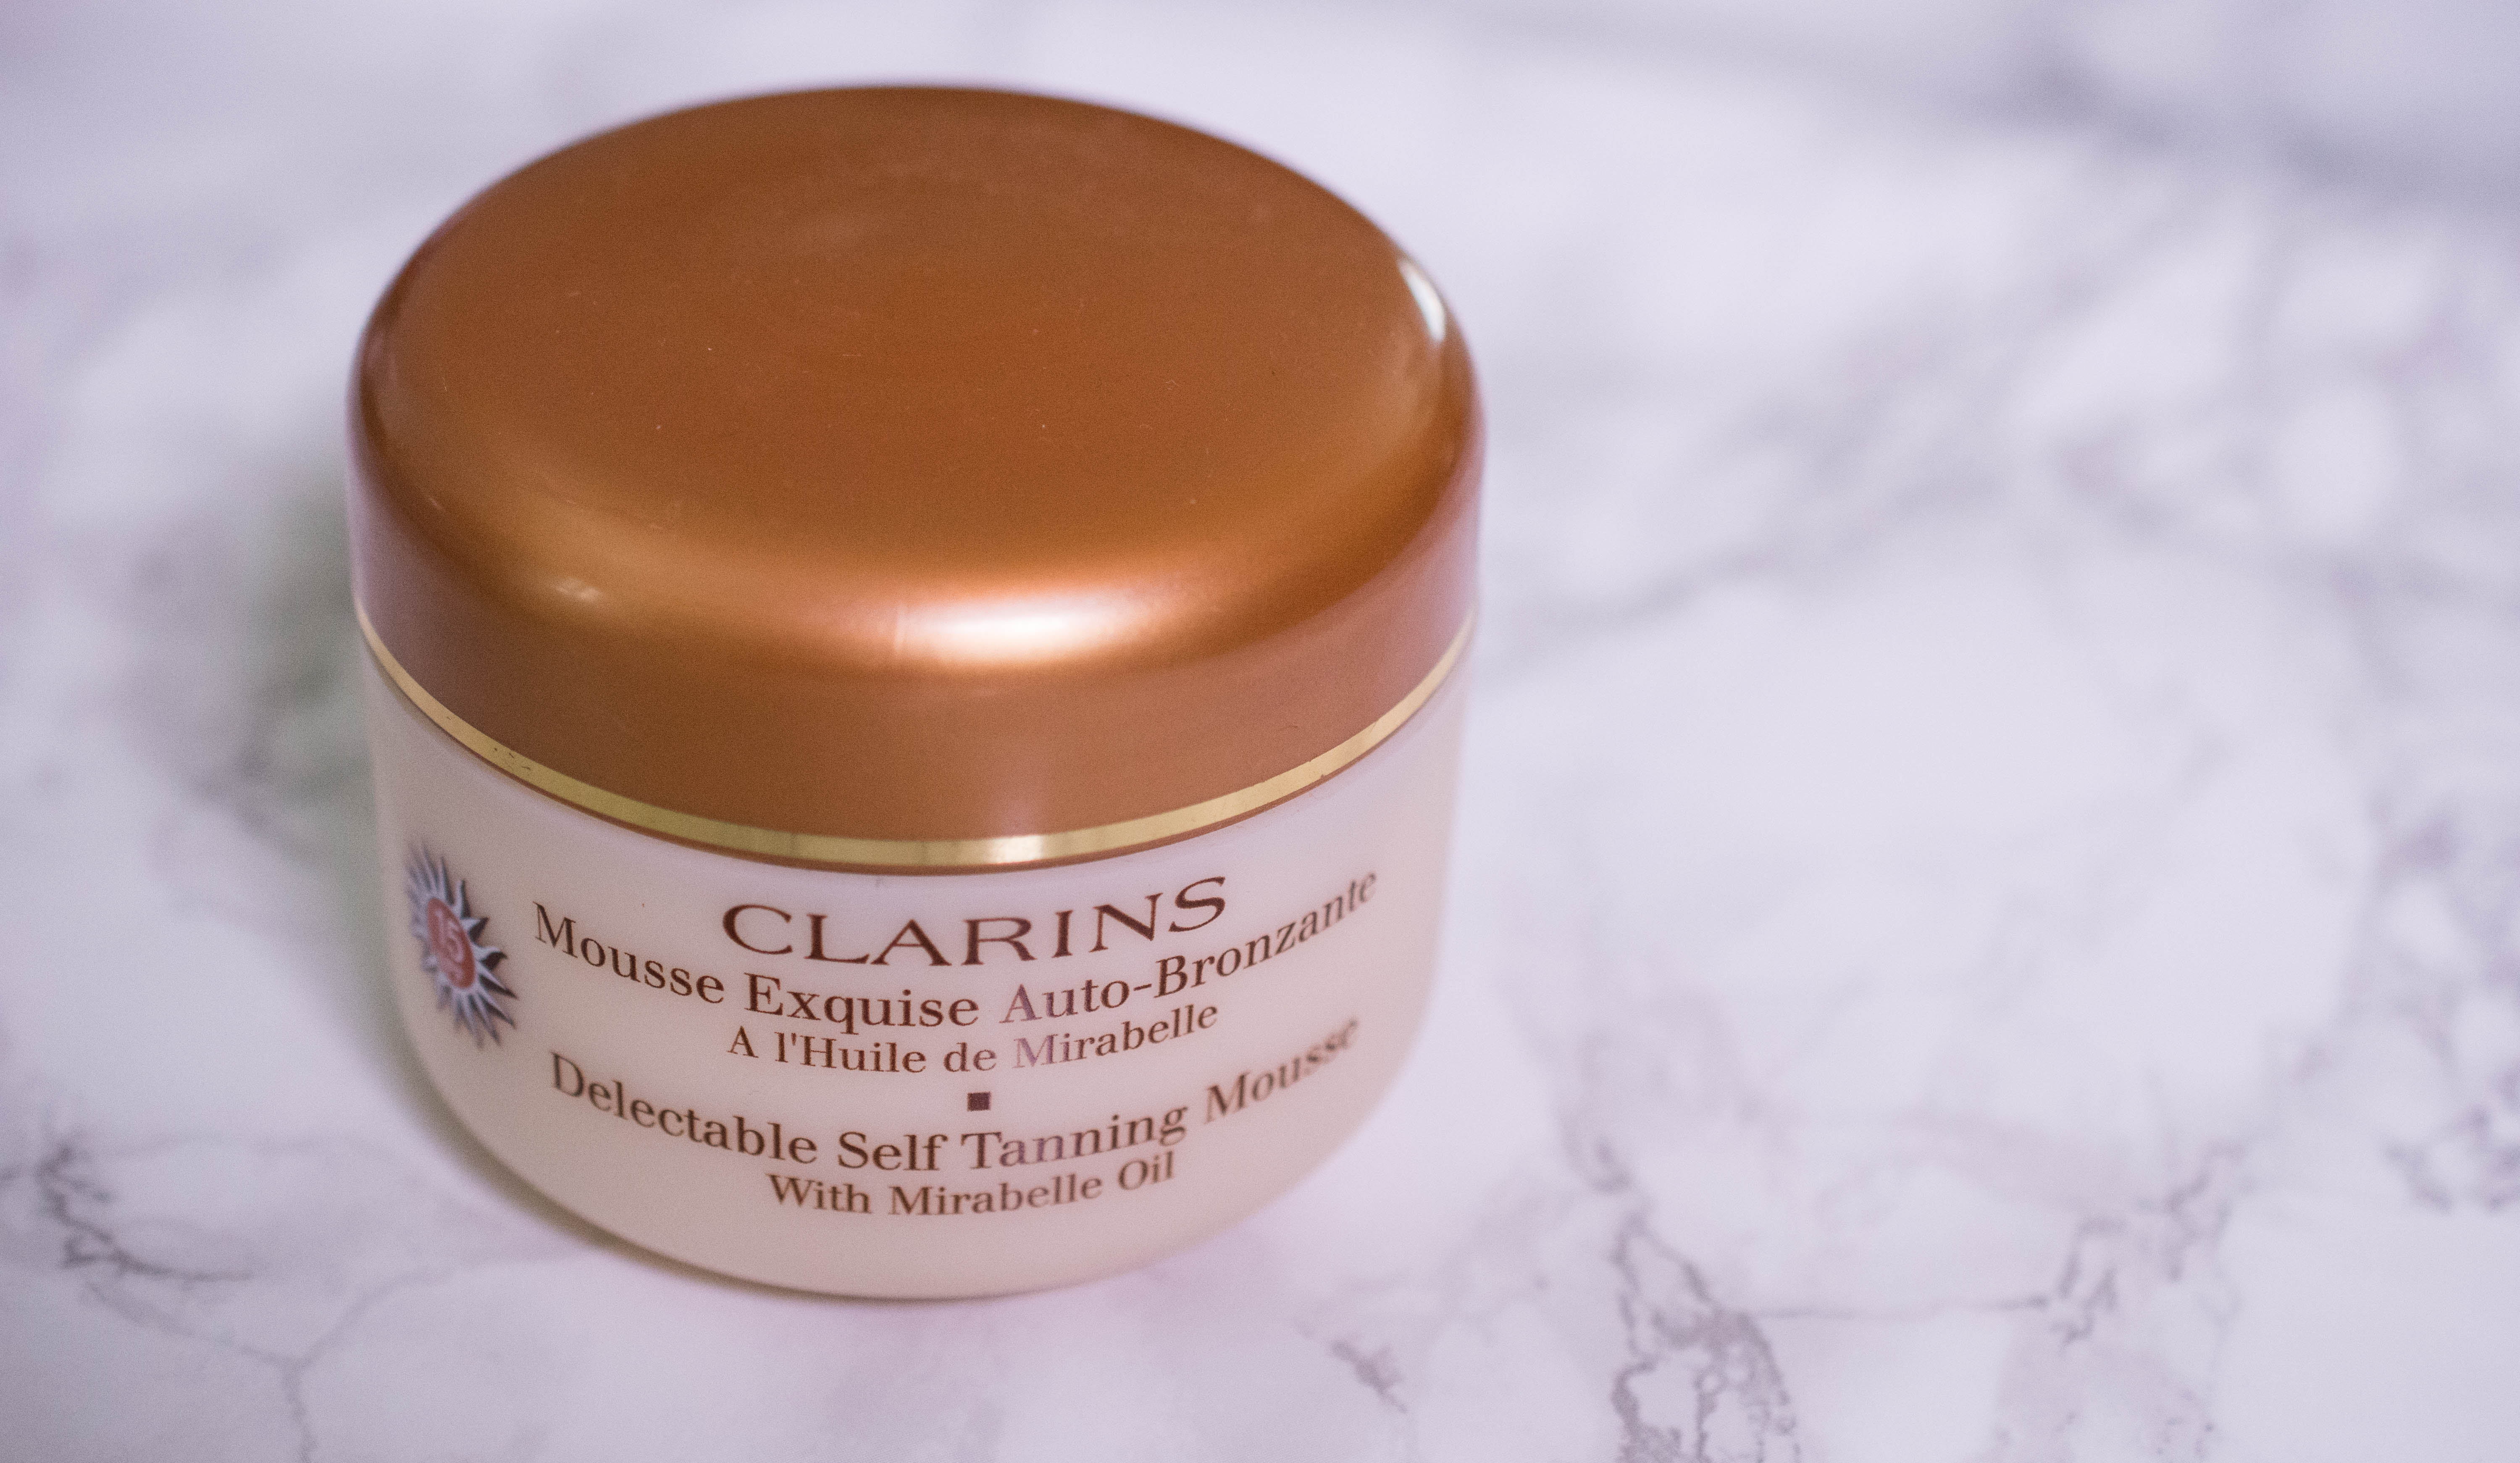 Clarins Delectable Self Tanning Mousse with mirabelle oil (1 von 2)